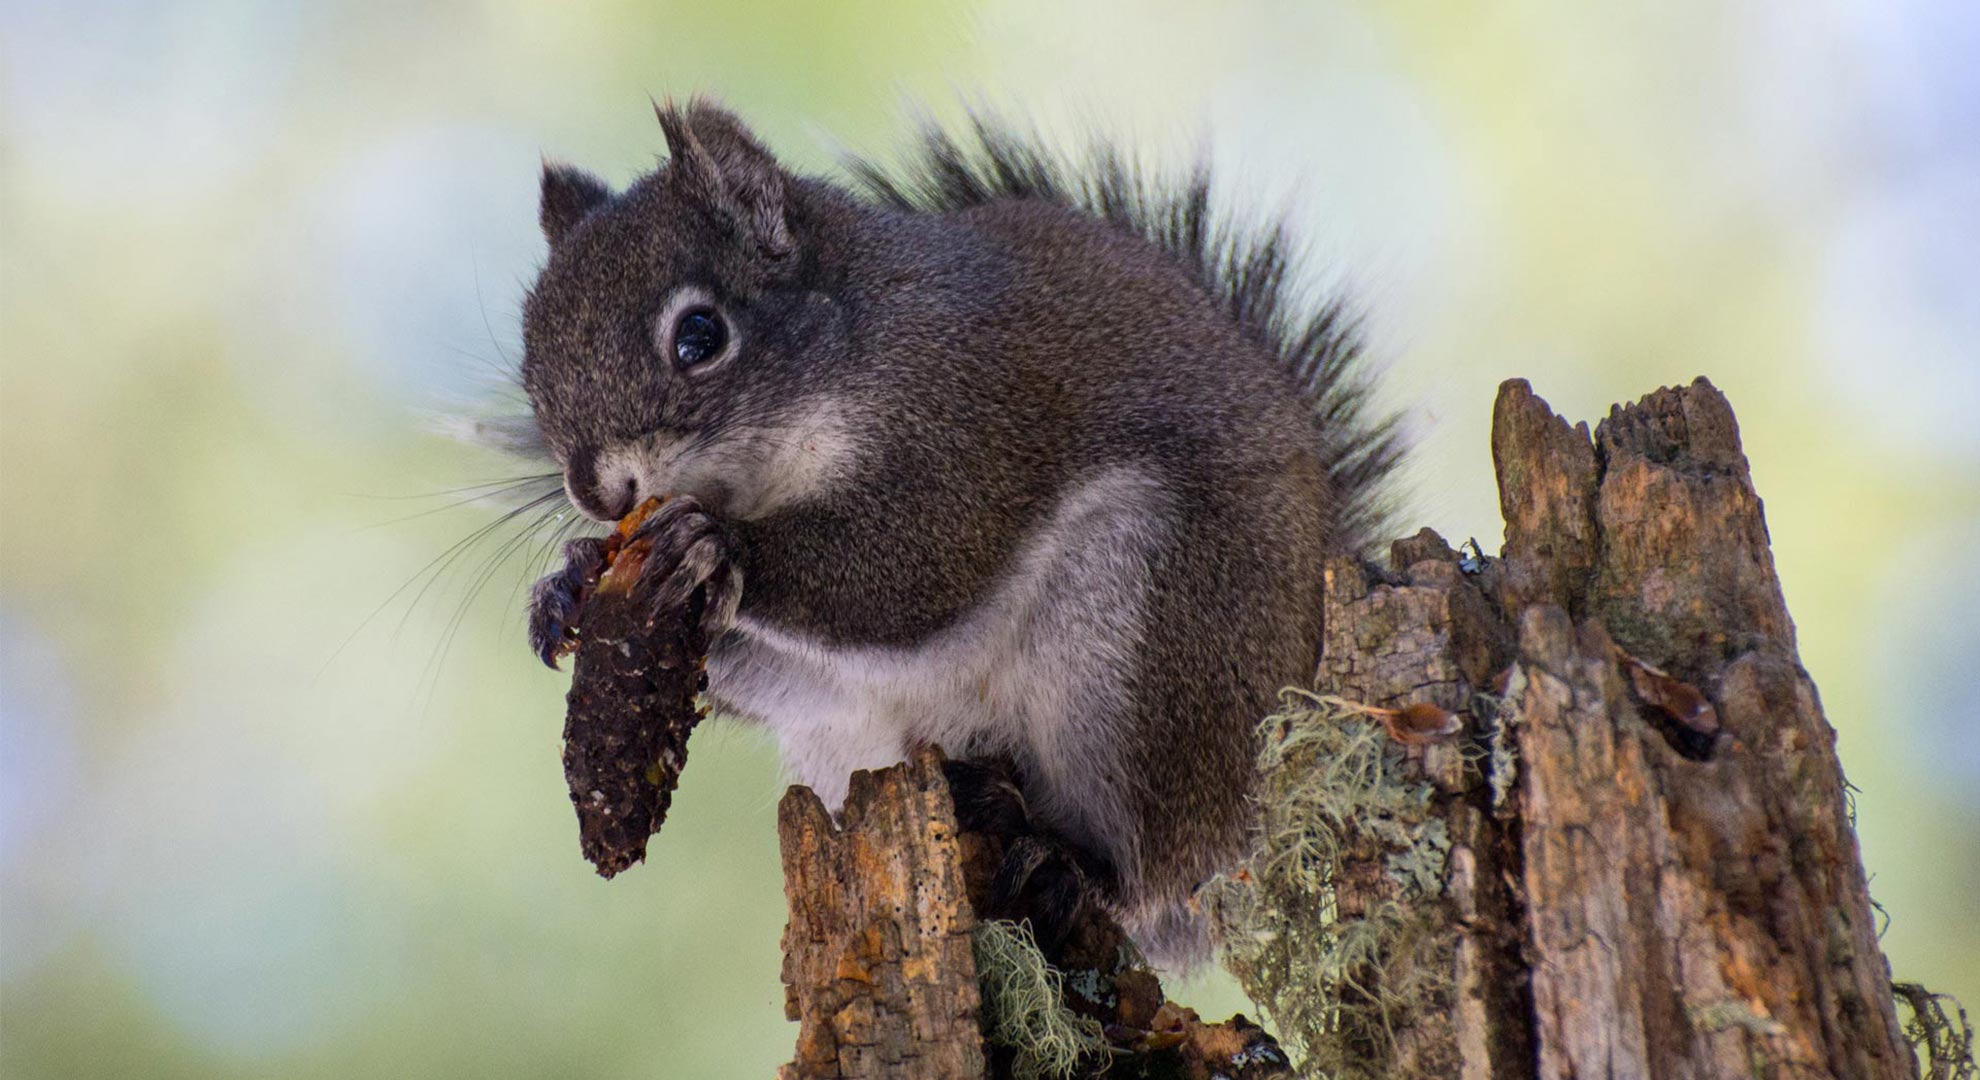 A wildfire last summer left even fewer numbers of the endangered red squirrel on Mount Graham.